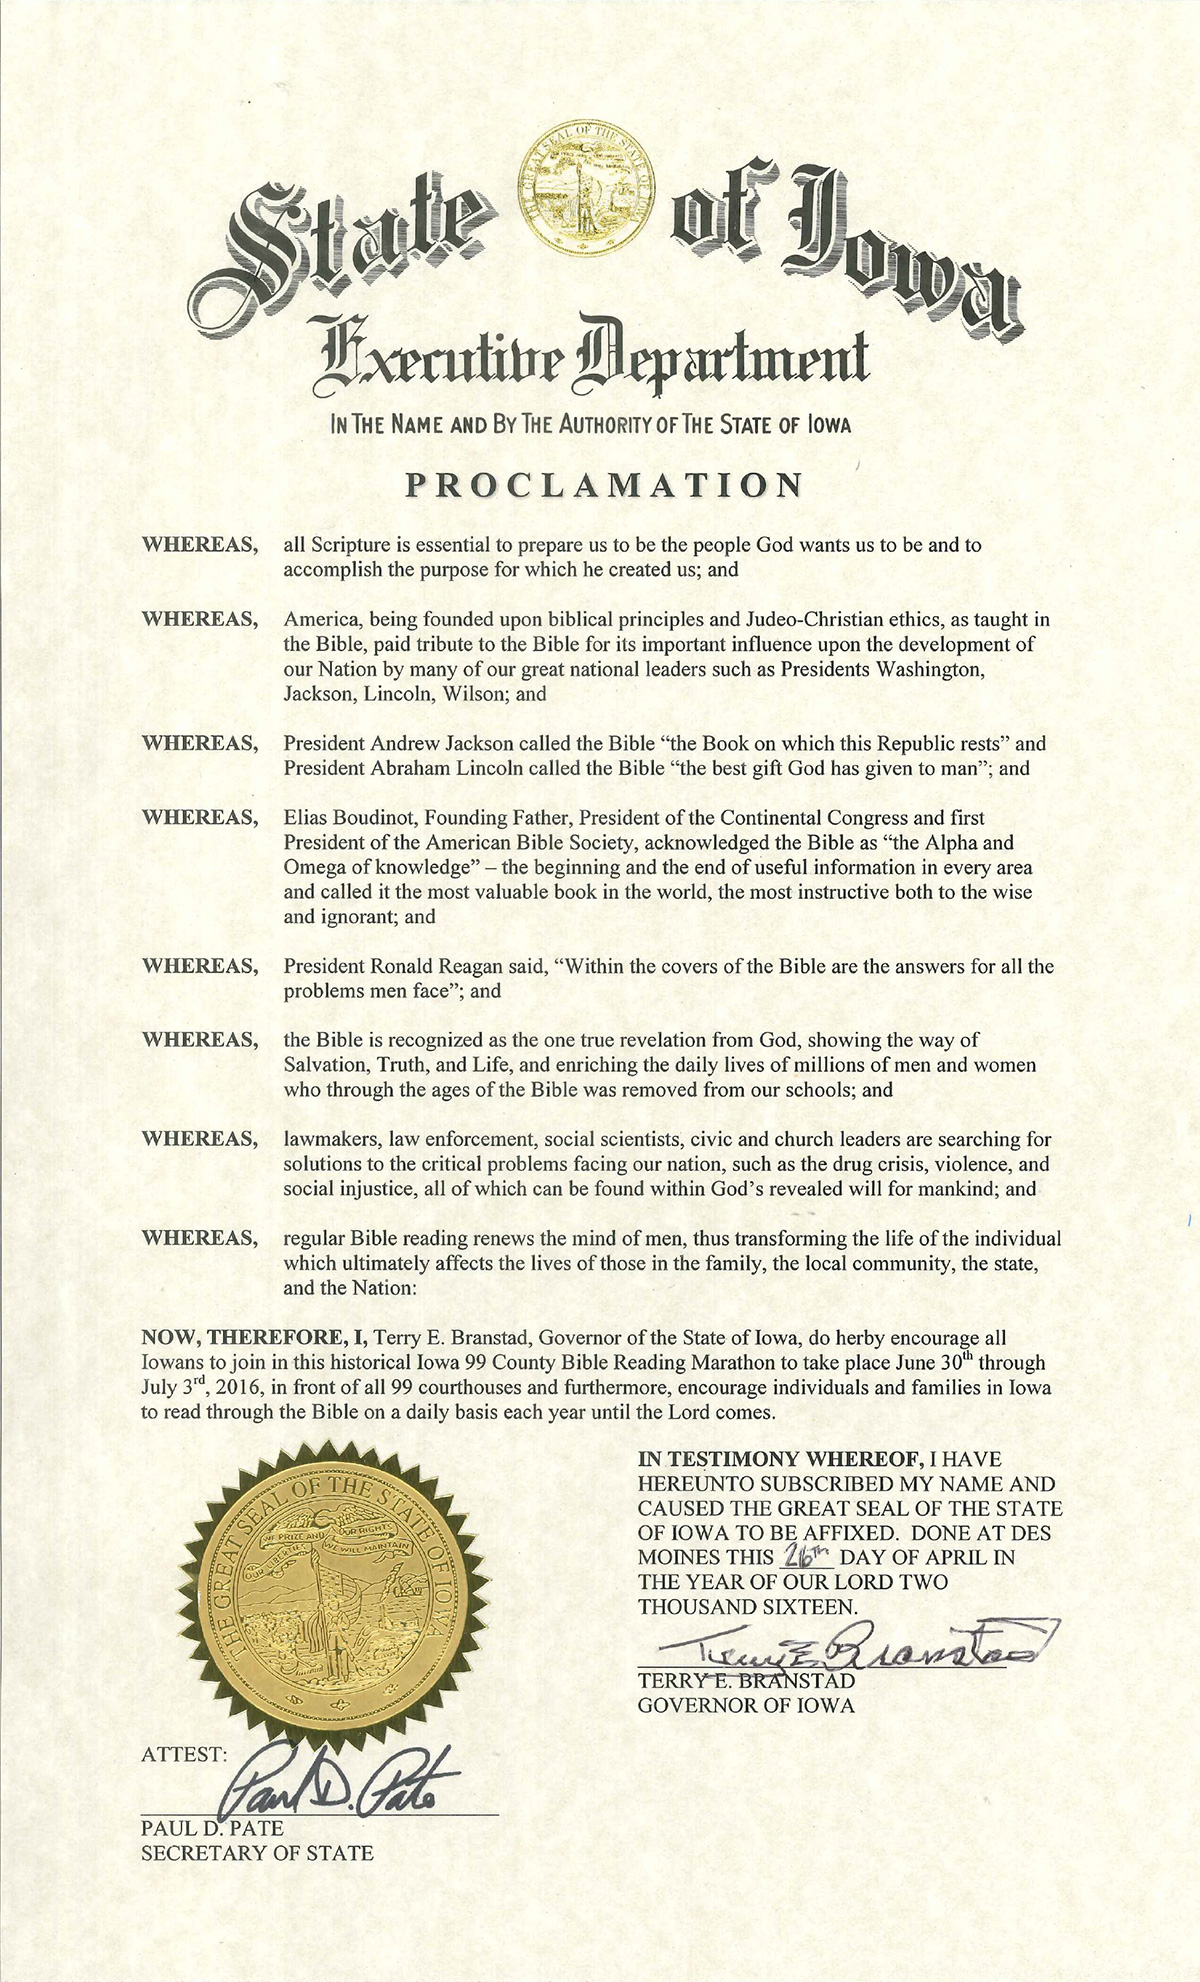 99-county-Bible-tour-16-proclamation